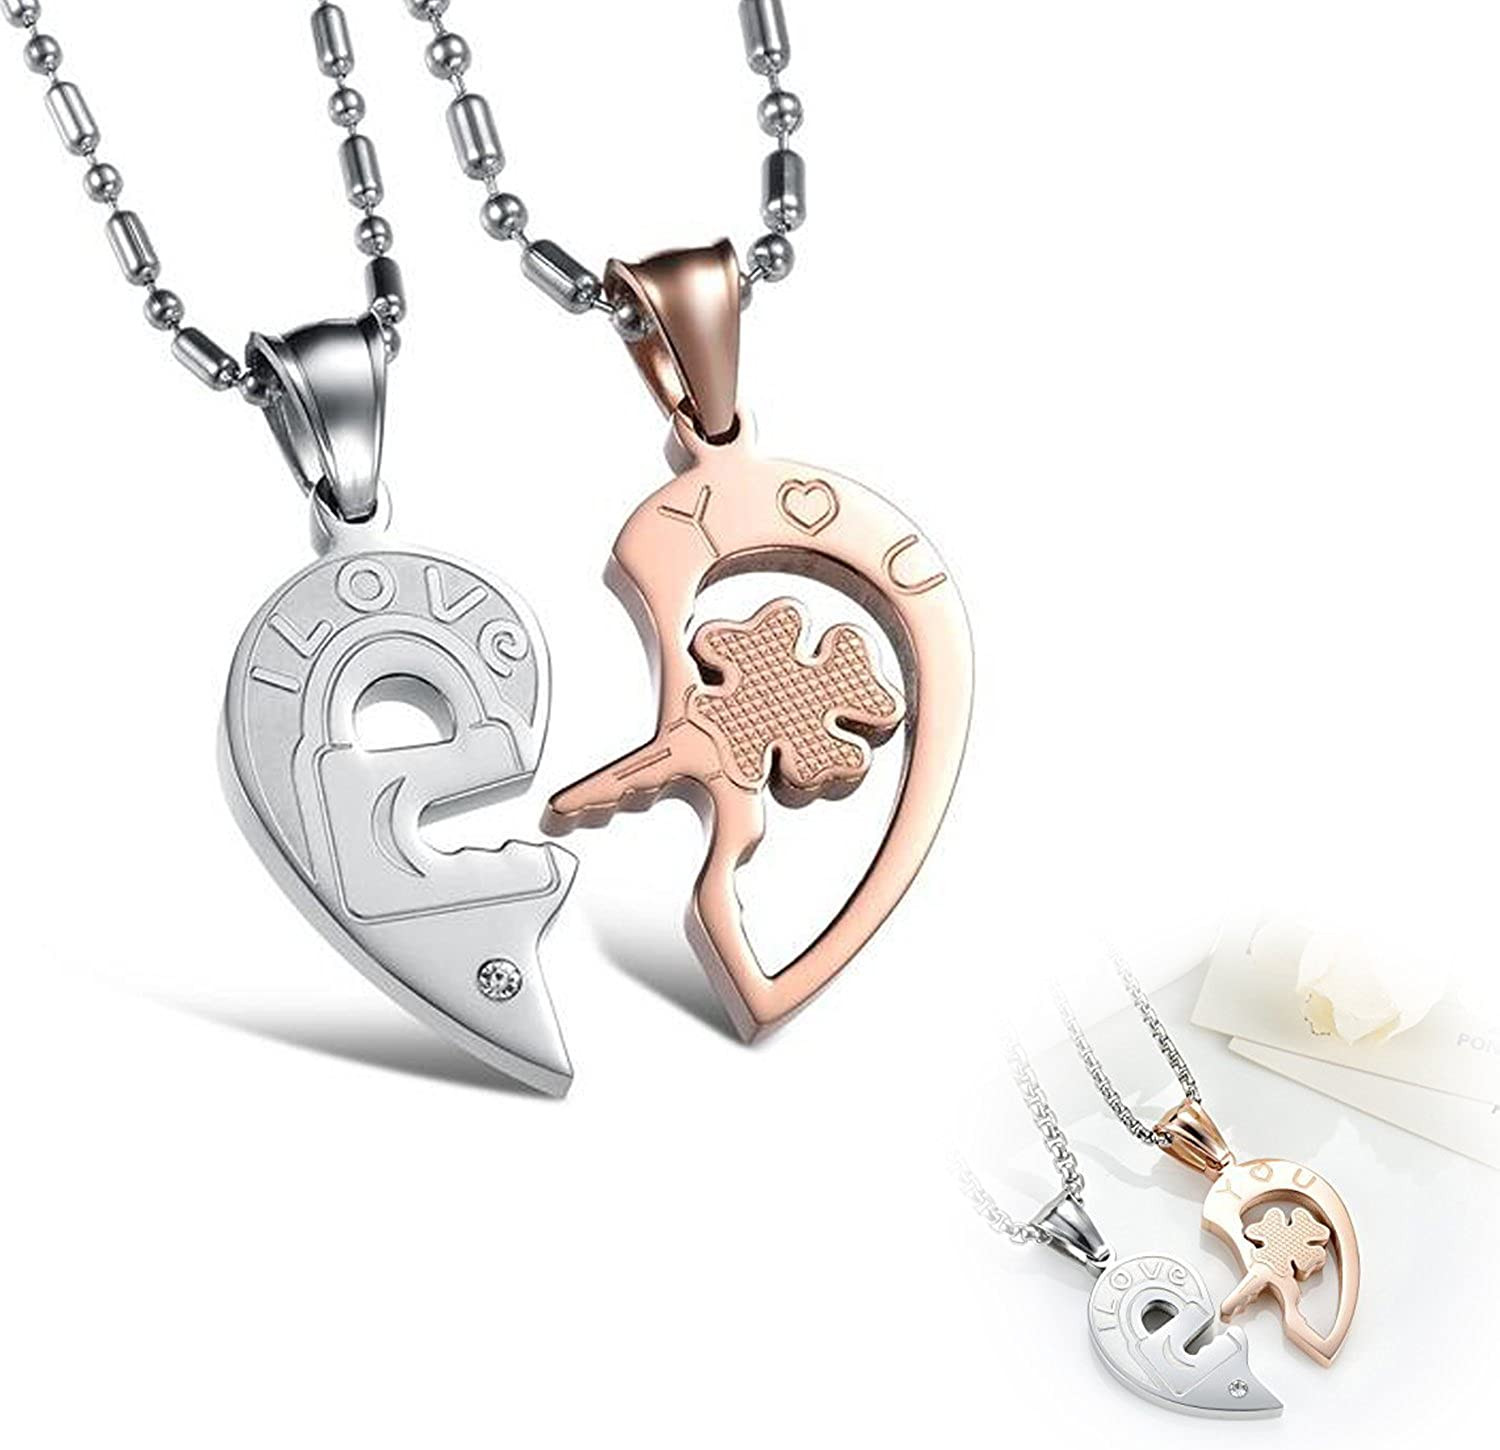 Rose Gold-plated Silver 22mm Heart Lock And Key Pendant